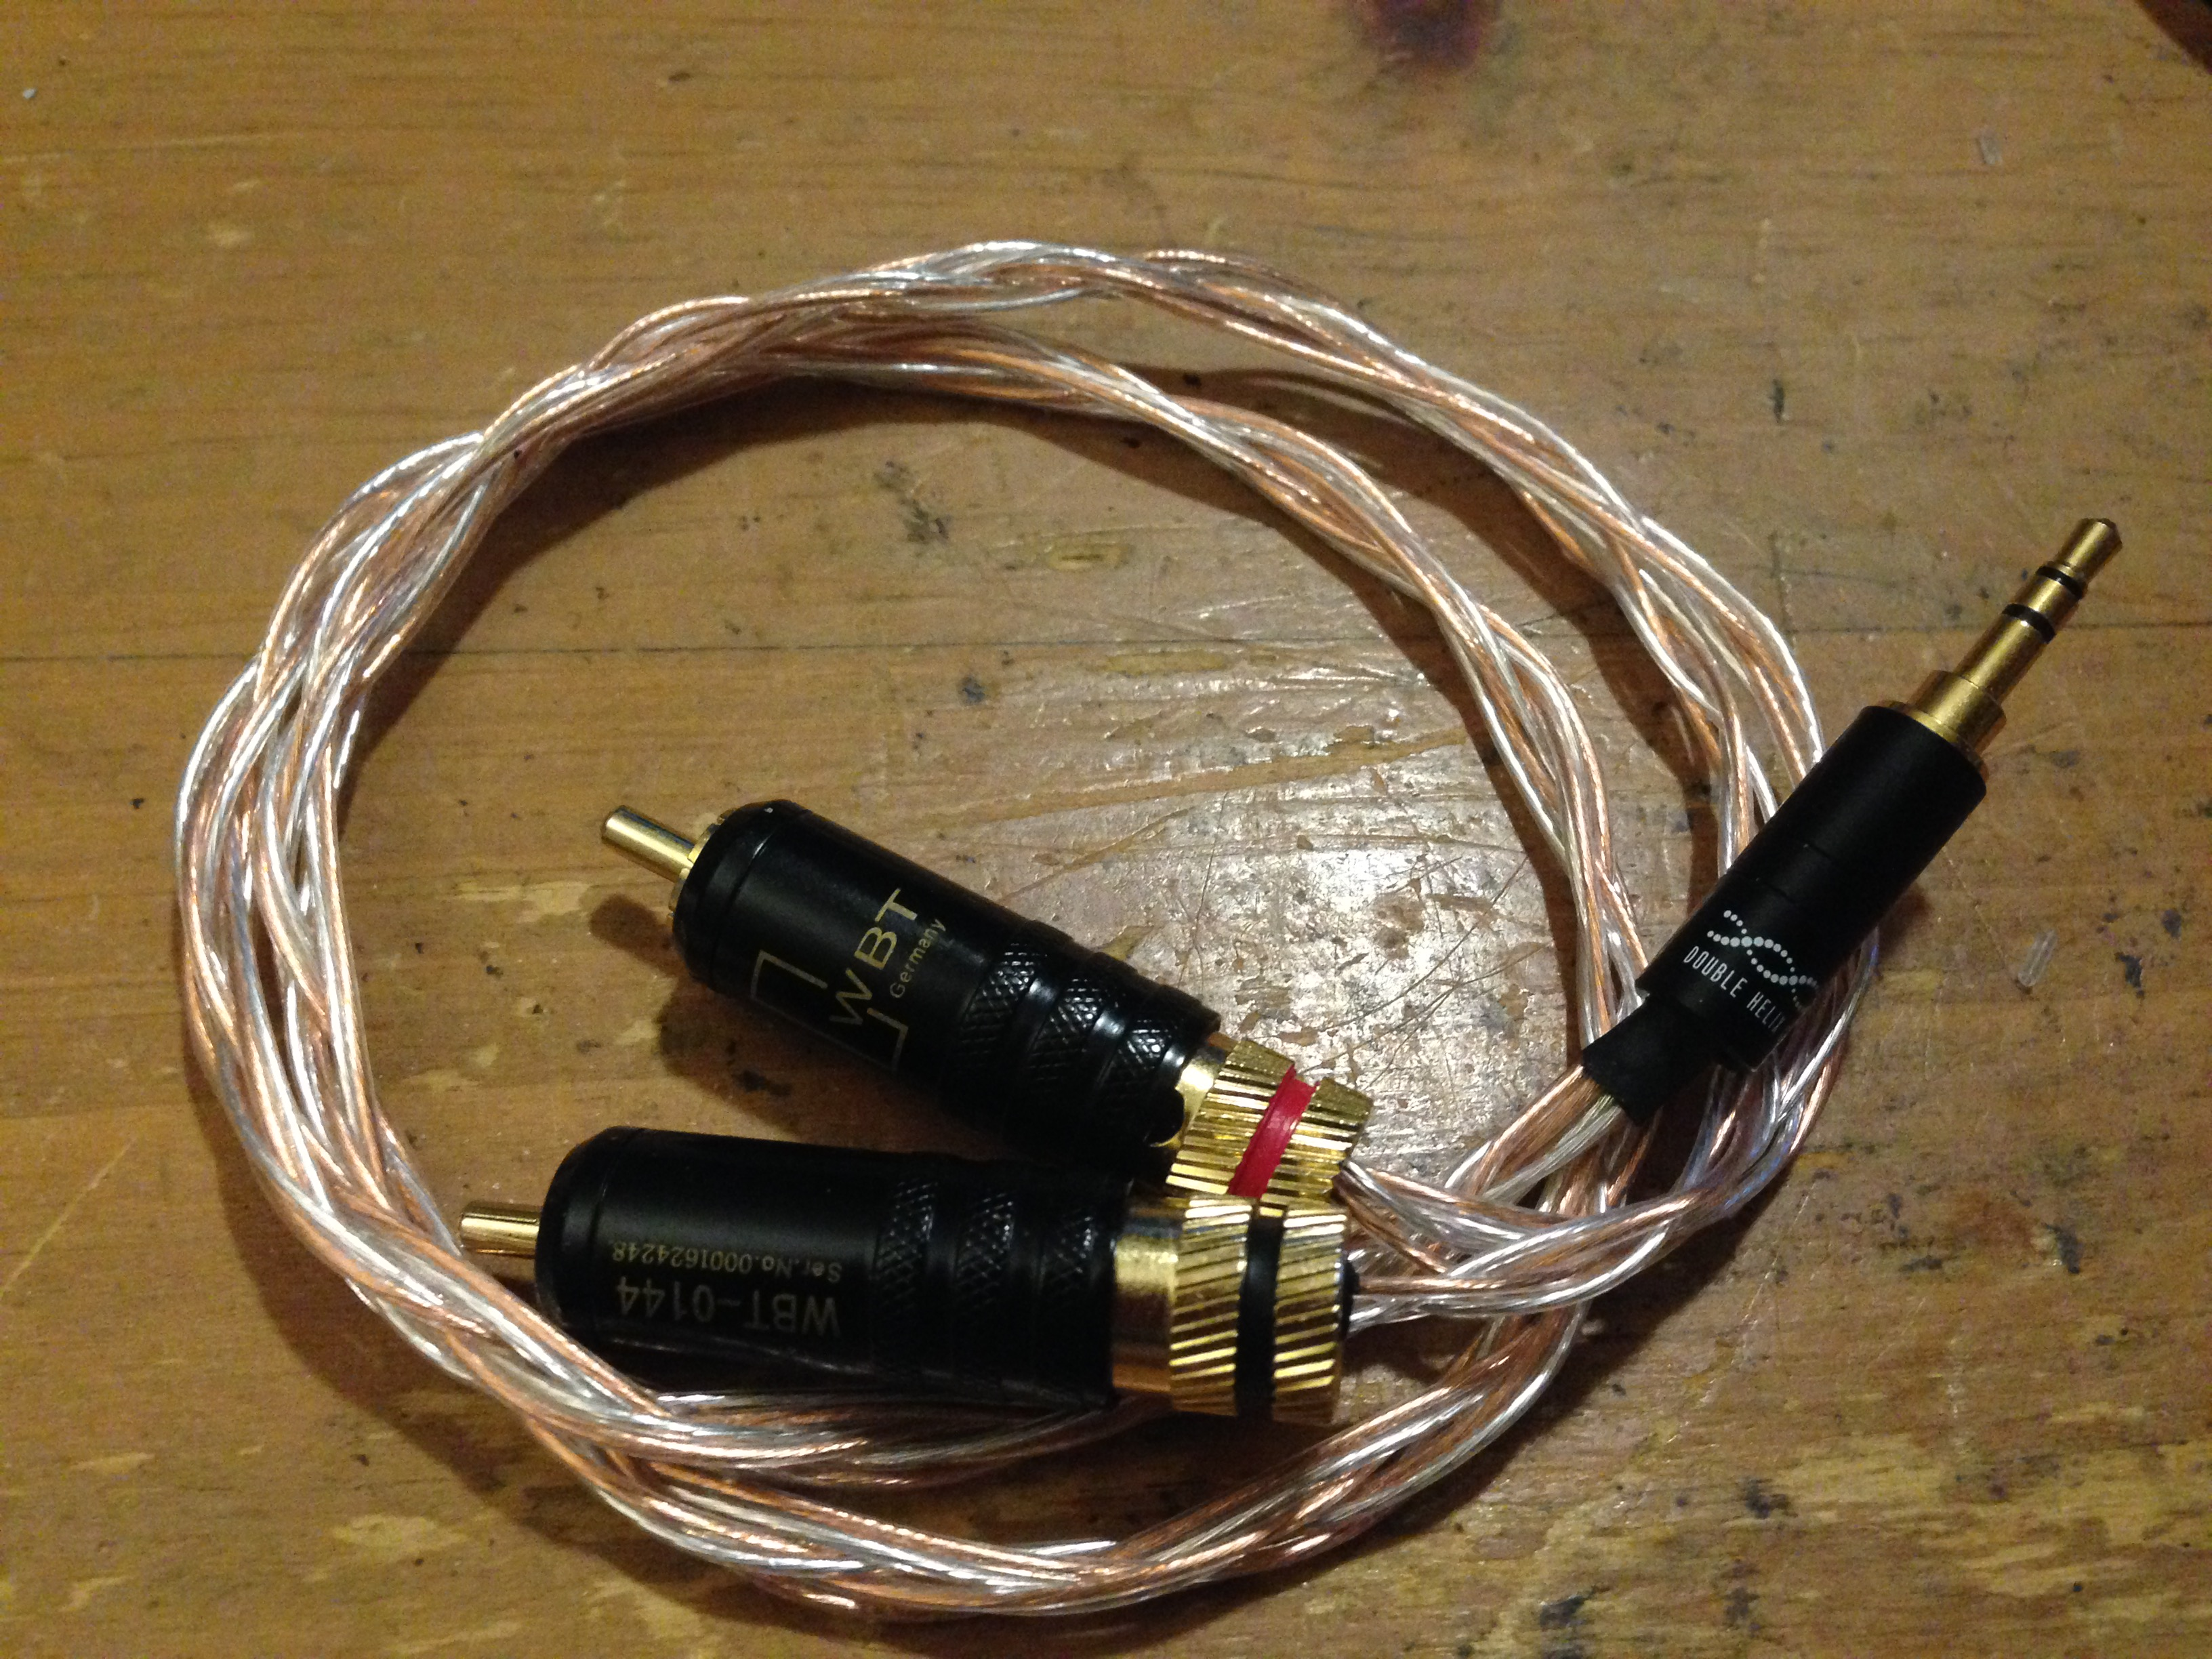 Diy Cable Questions And Comments Thread Page 299 Headphone Mogami Xlr Wiring Diagram Wbt Locking Rcas Double Helix 1 8 With 24 Awg Silver Plate Occ Copper 22 Wire Sounds Really Good Out Of The Qp1r